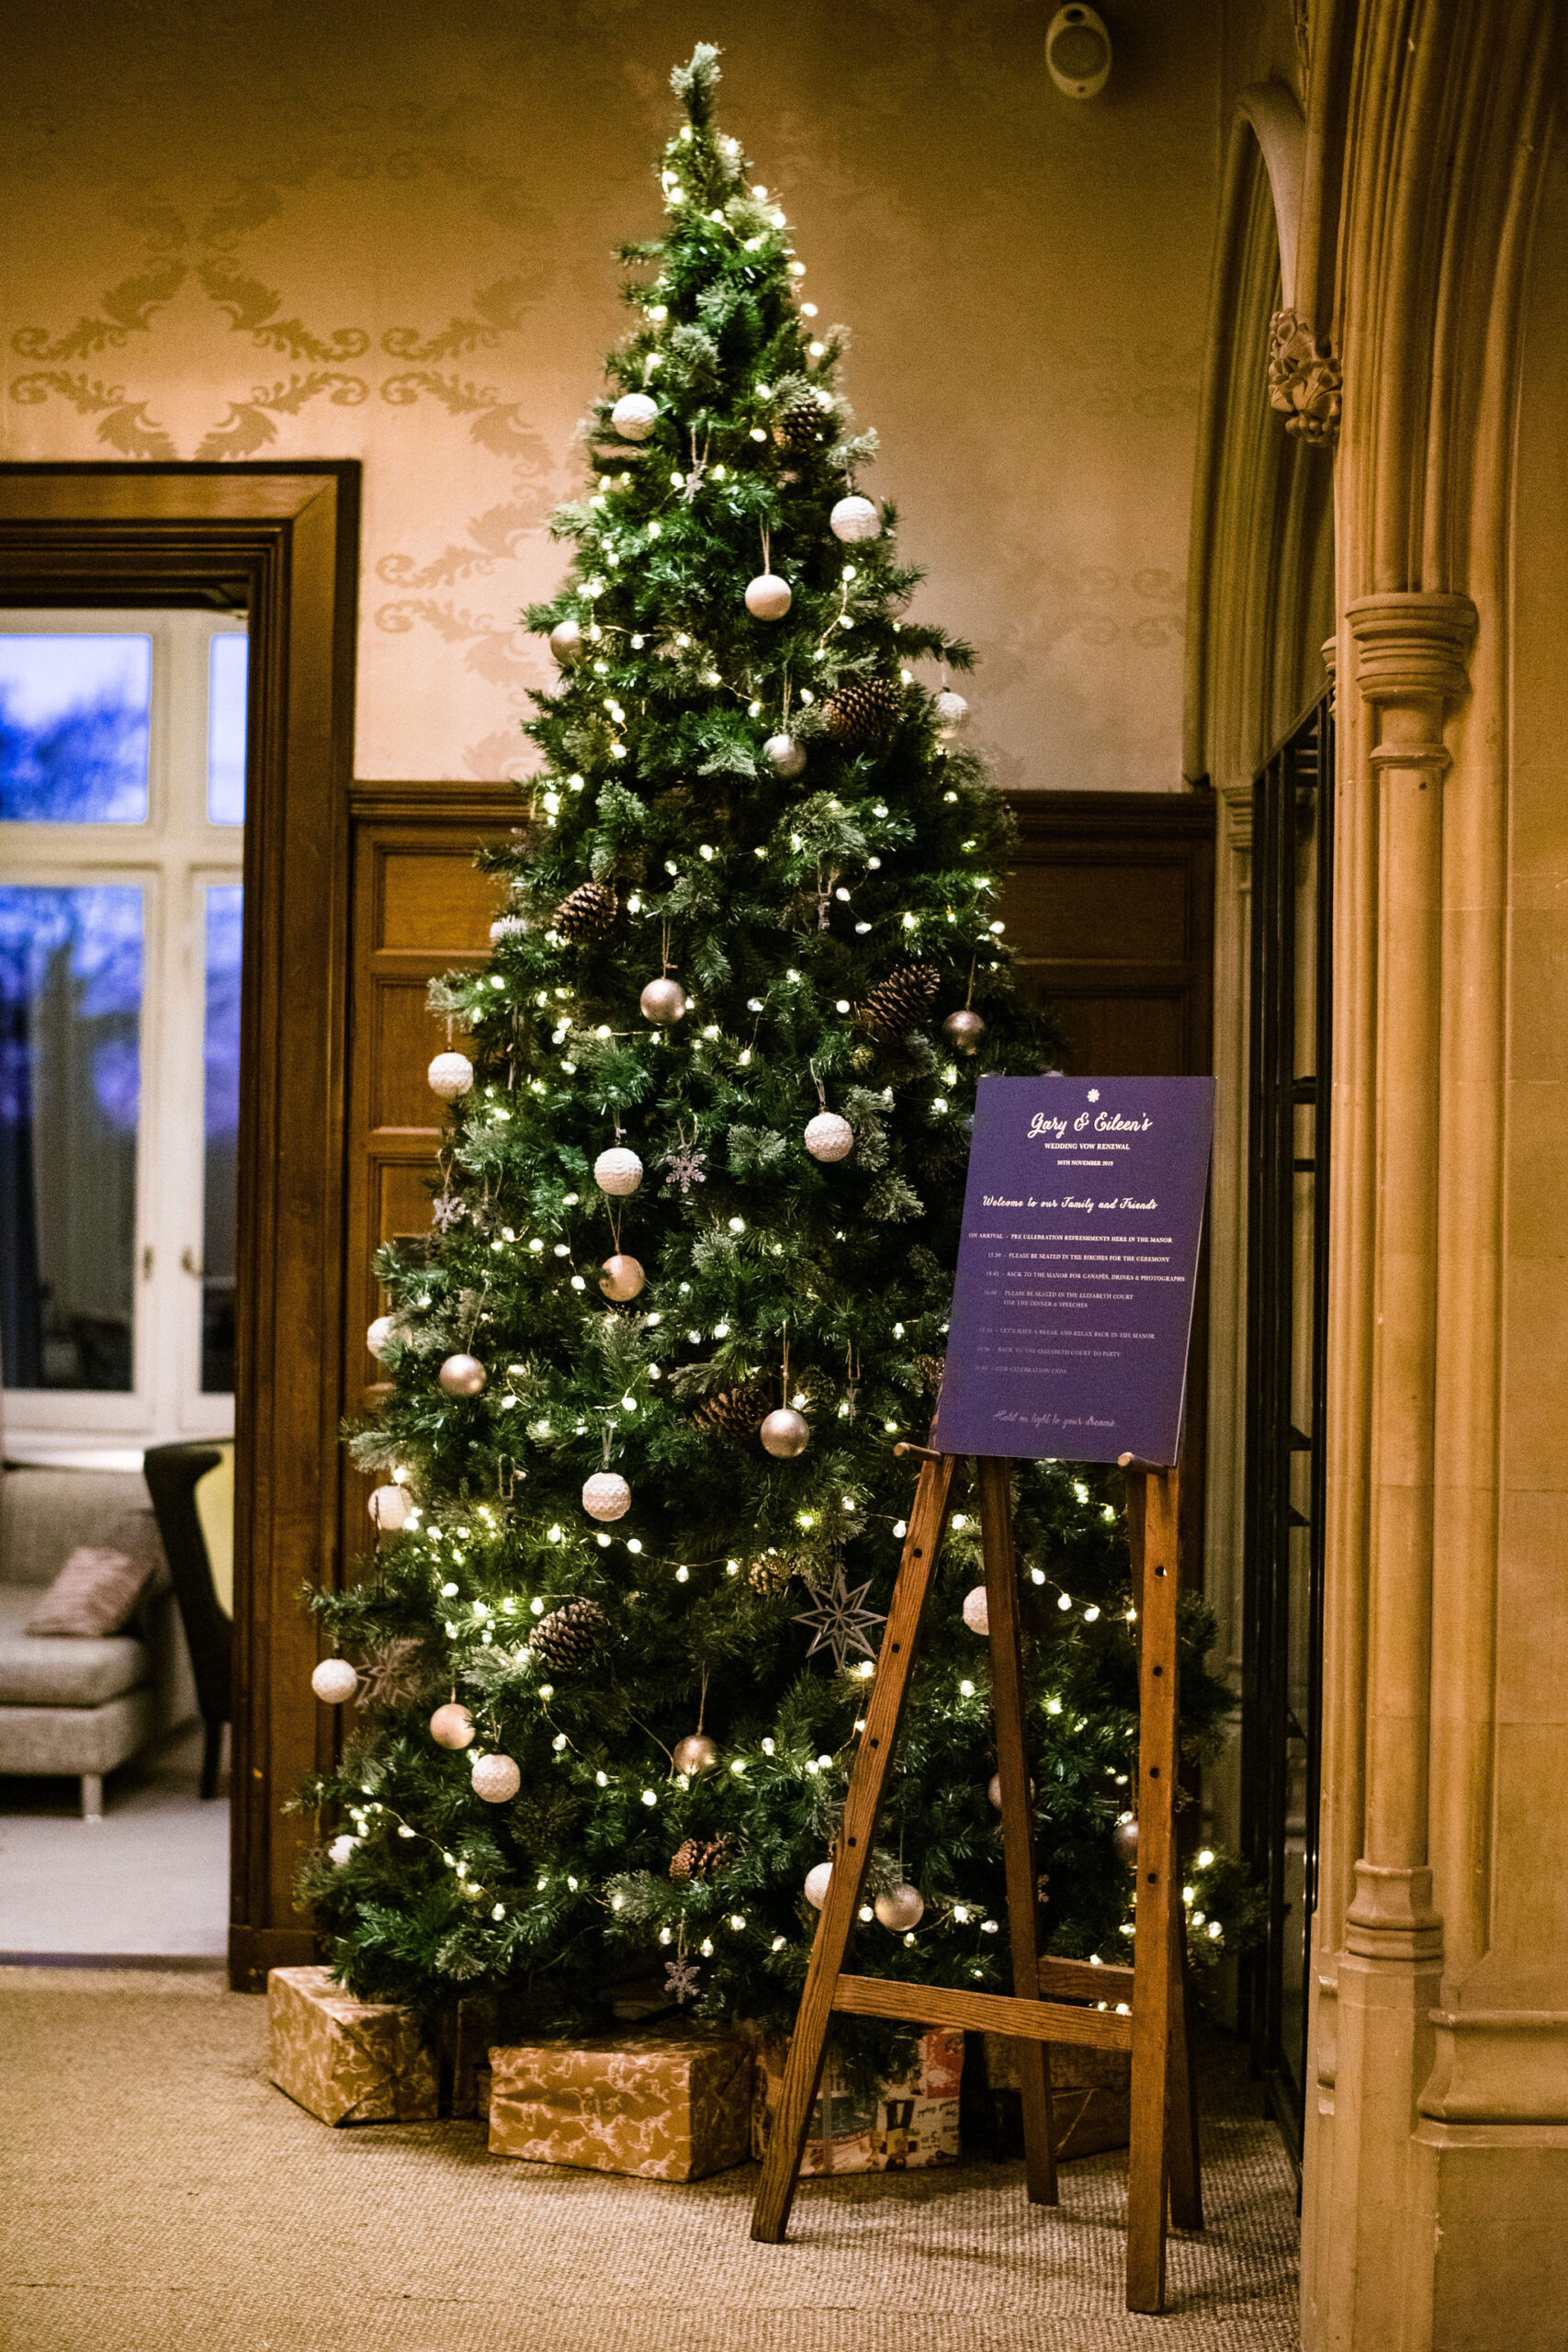 Christmas tree Hampton Manor renewal of vows celebrant ceremony